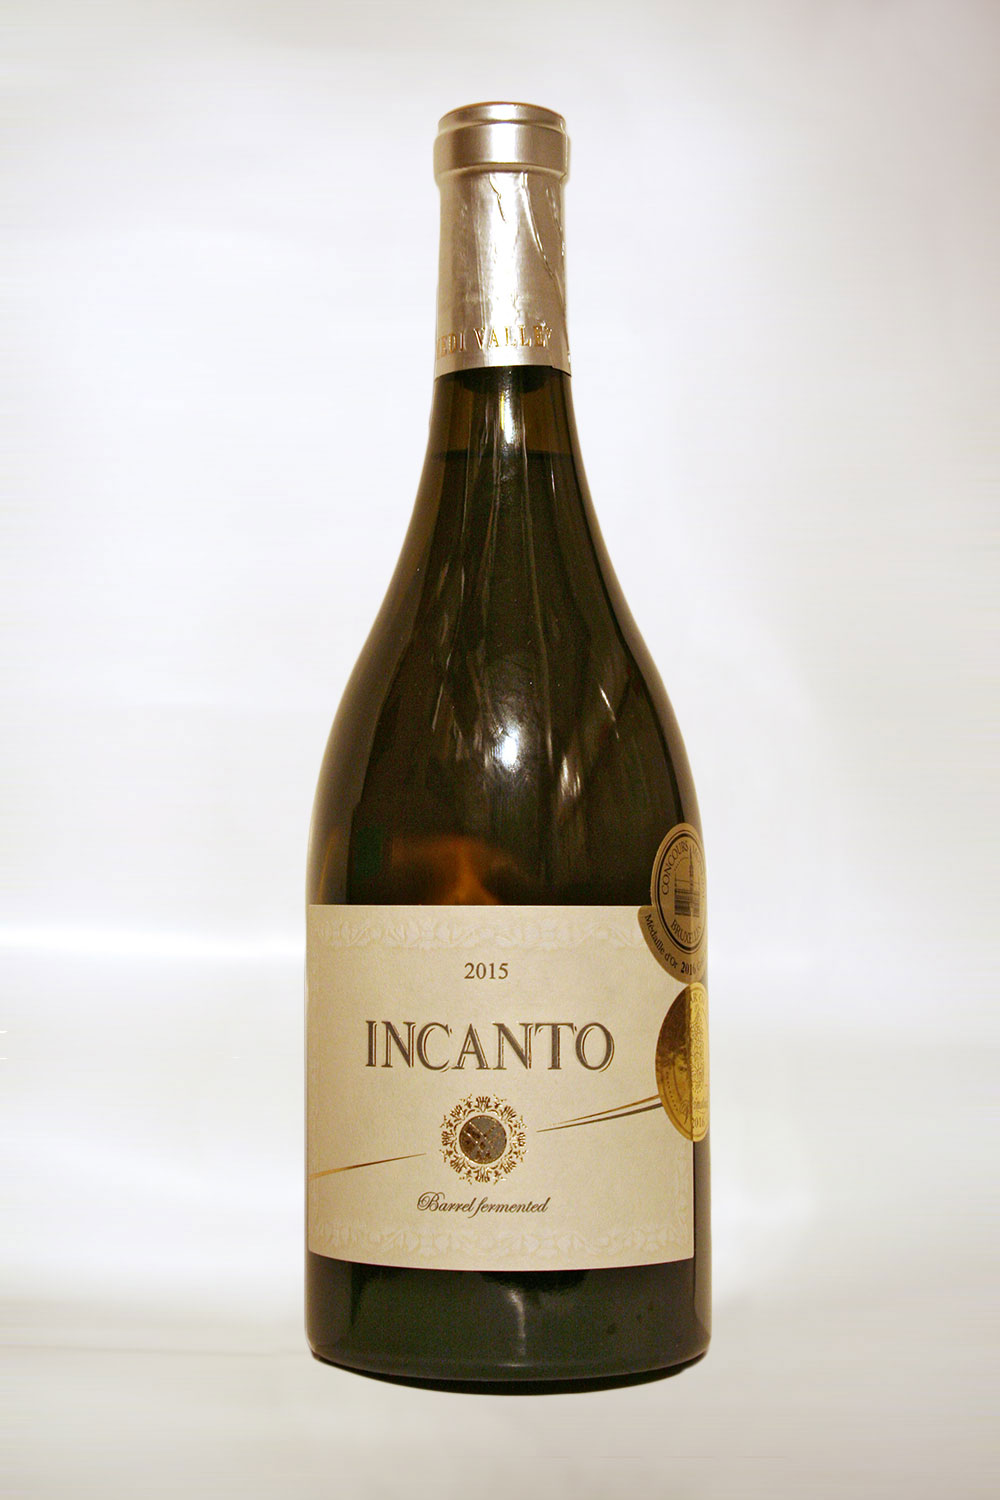 Incanto Chardonnay Barrel fermented 2015